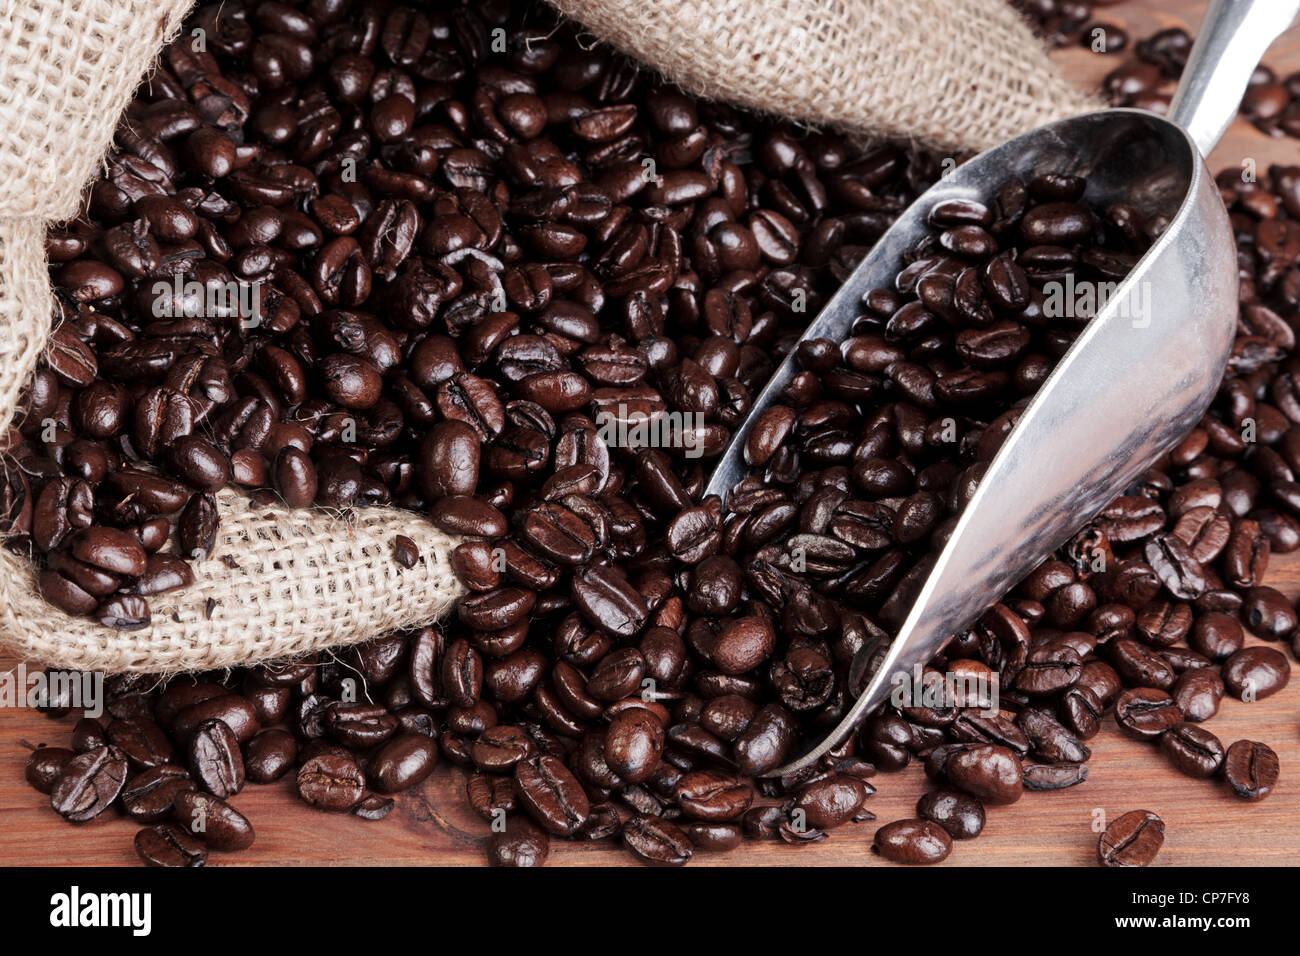 Photo of coffee beans in a hessian sack with metal scoop - Stock Image